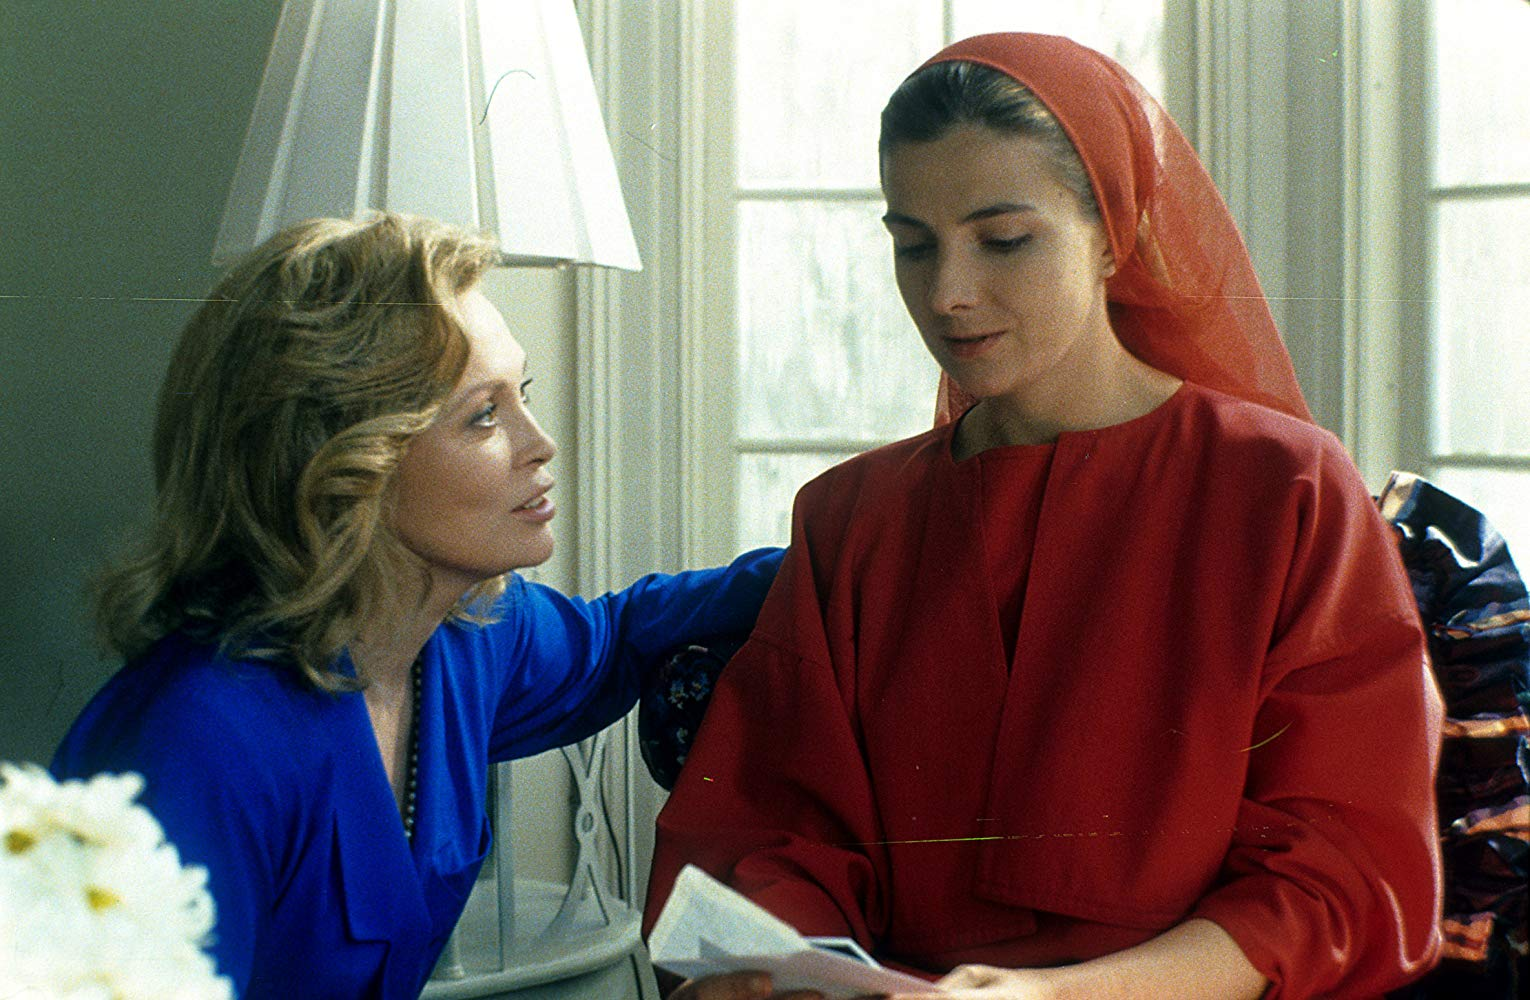 Serena Joy (Faye Dunaway) and Offred (Natasha Richardson) in The Handmaid's Tale (1990)